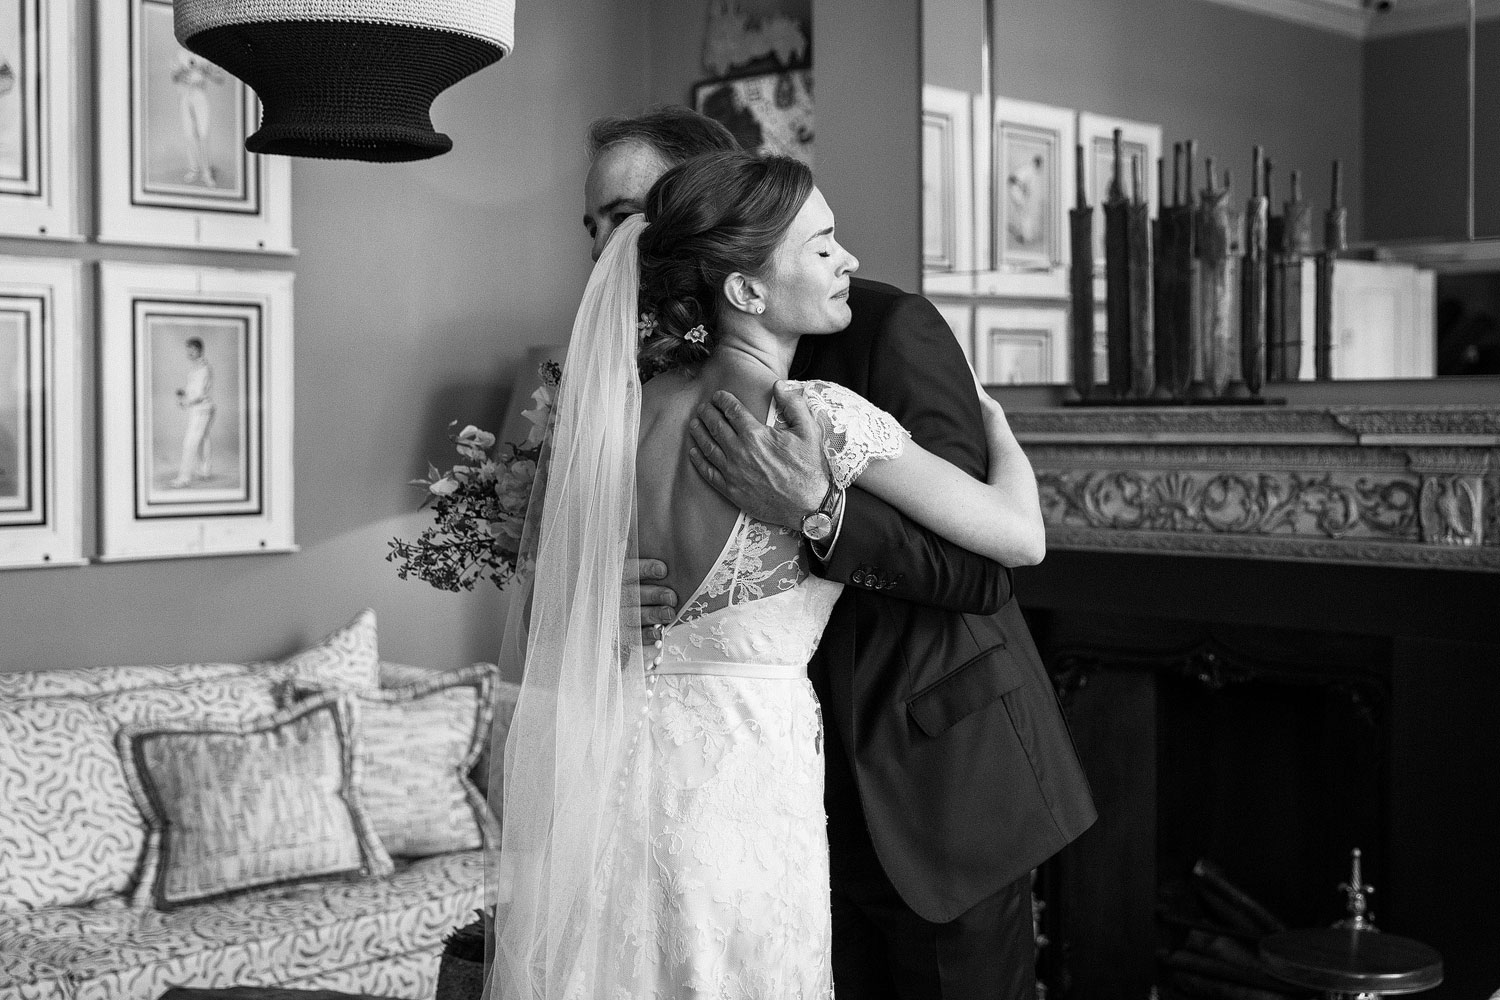 A bride cries while hugging her father at the Dorset Square Hotel before marrying at Burgh house - London wedding photographer